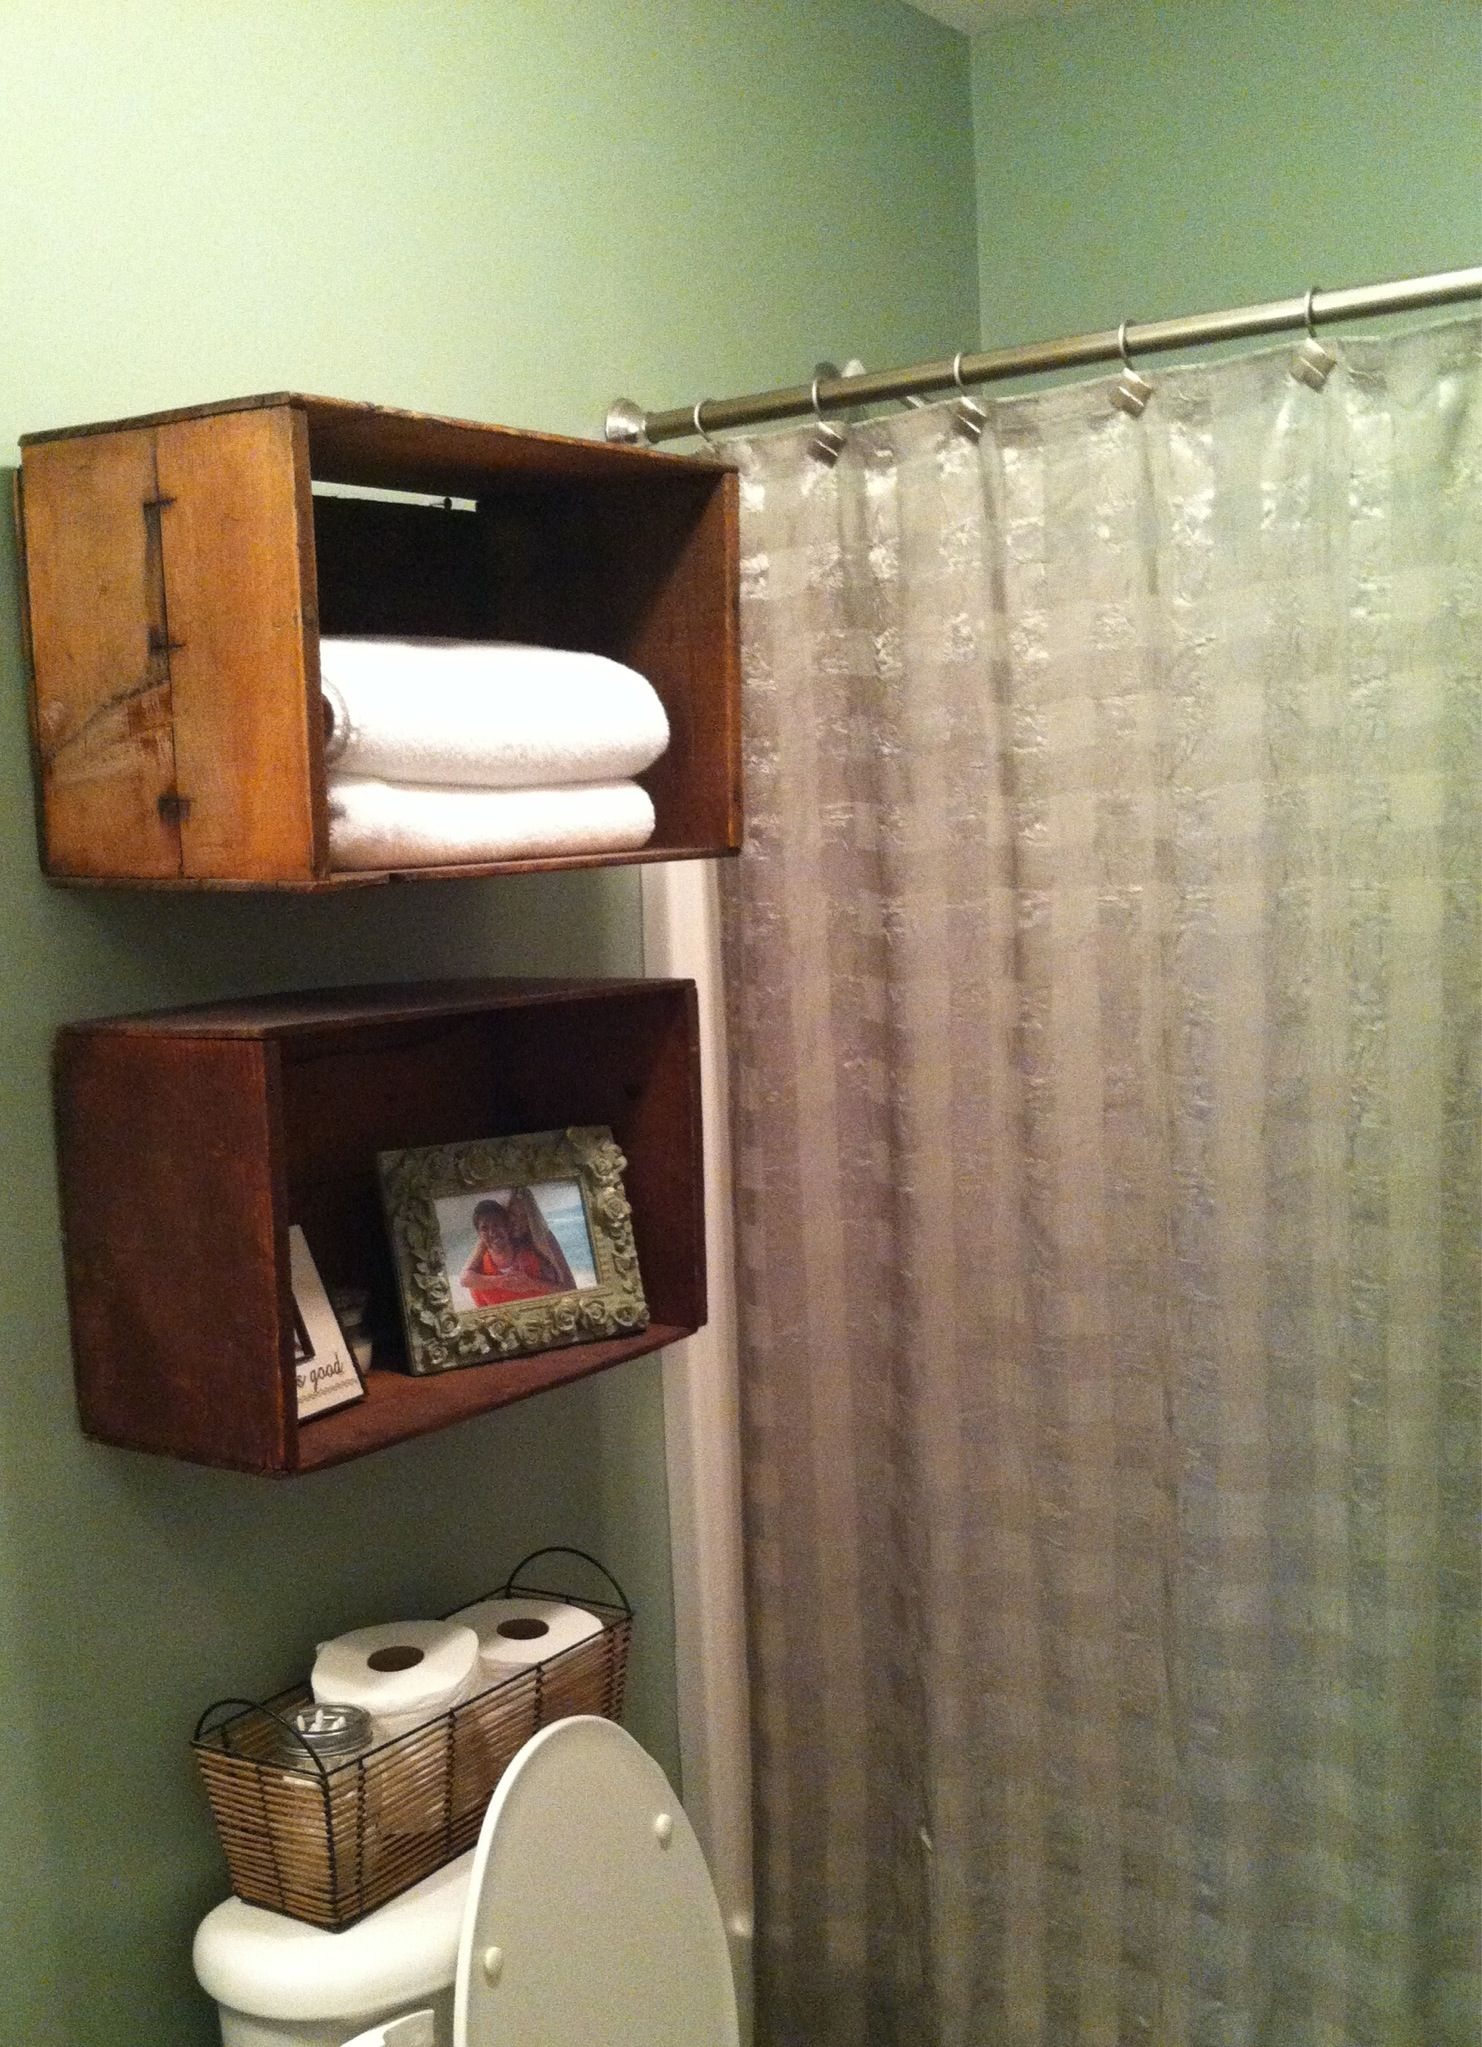 Wooden Crates As Bathroom Shelves My Home Sweet Home Pinterest Wooden Crates Crates And